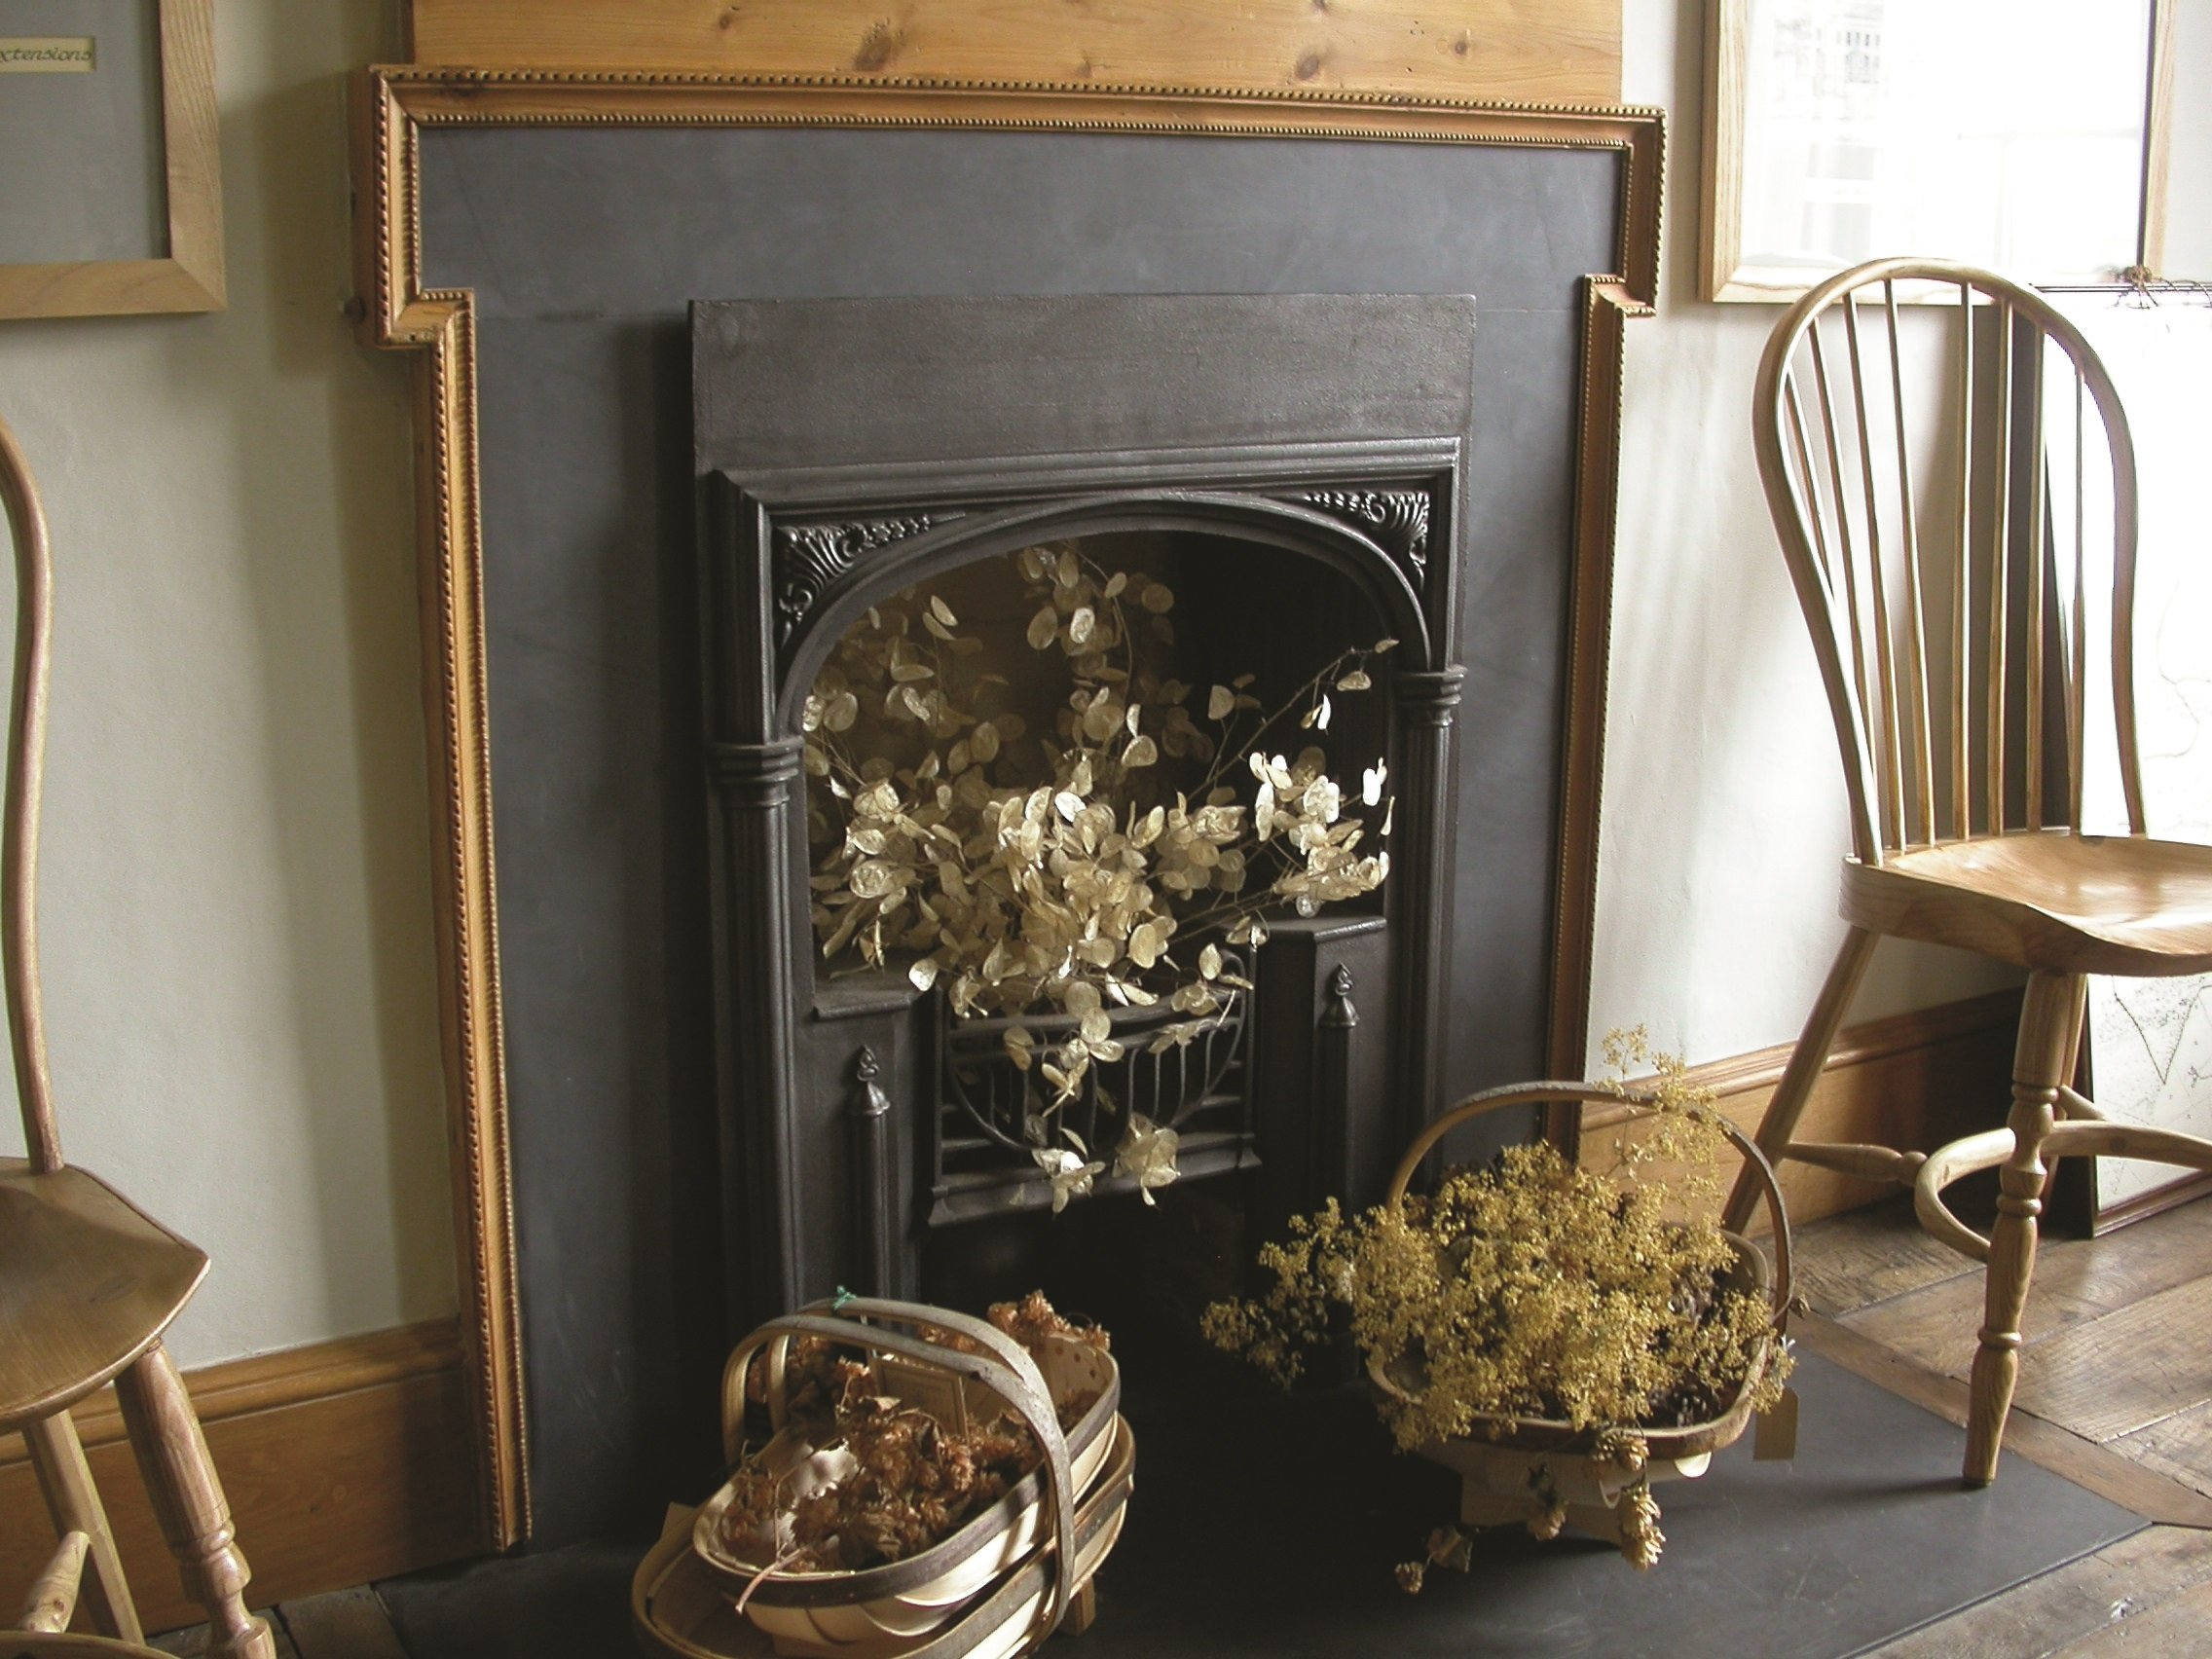 are you looking for cast iron fireplaces in glasgow